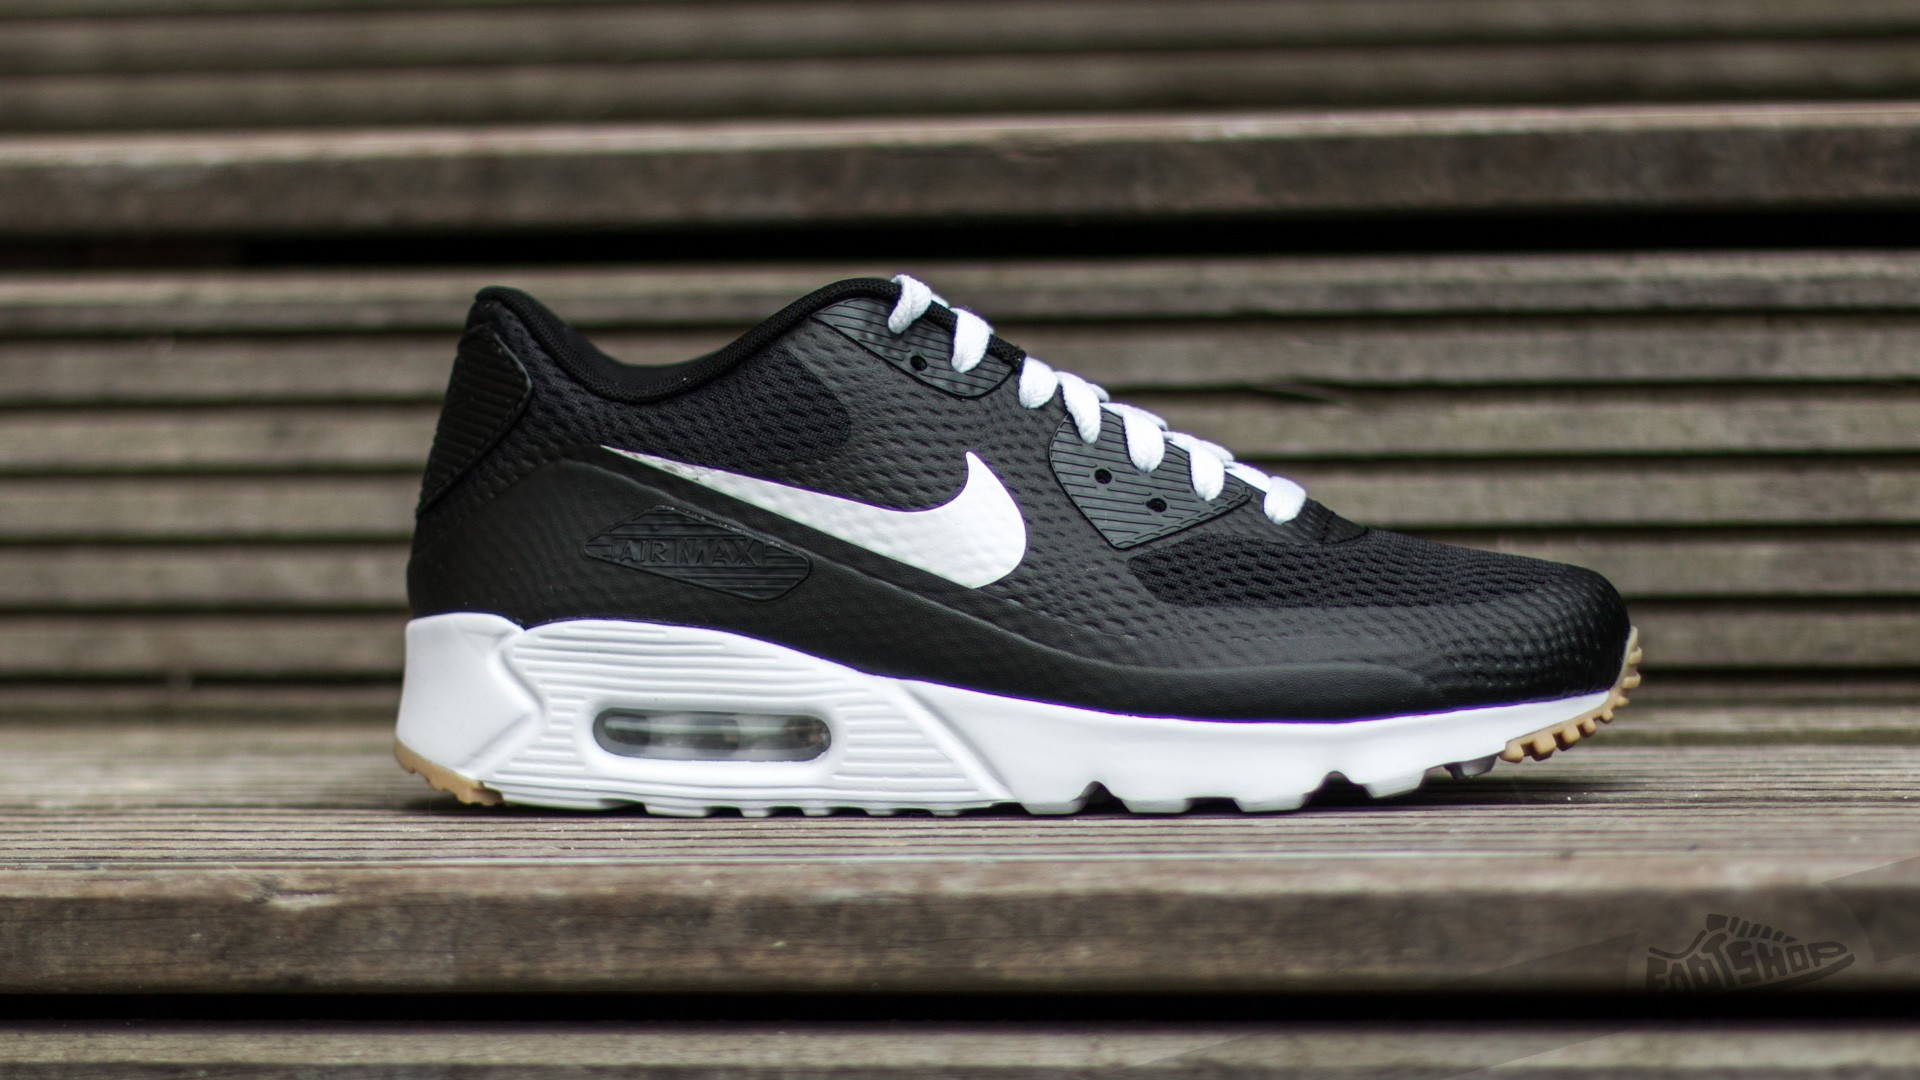 55c222ecd5 Nike Air Max 90 Ultra Essential Black/ White-Black | Footshop